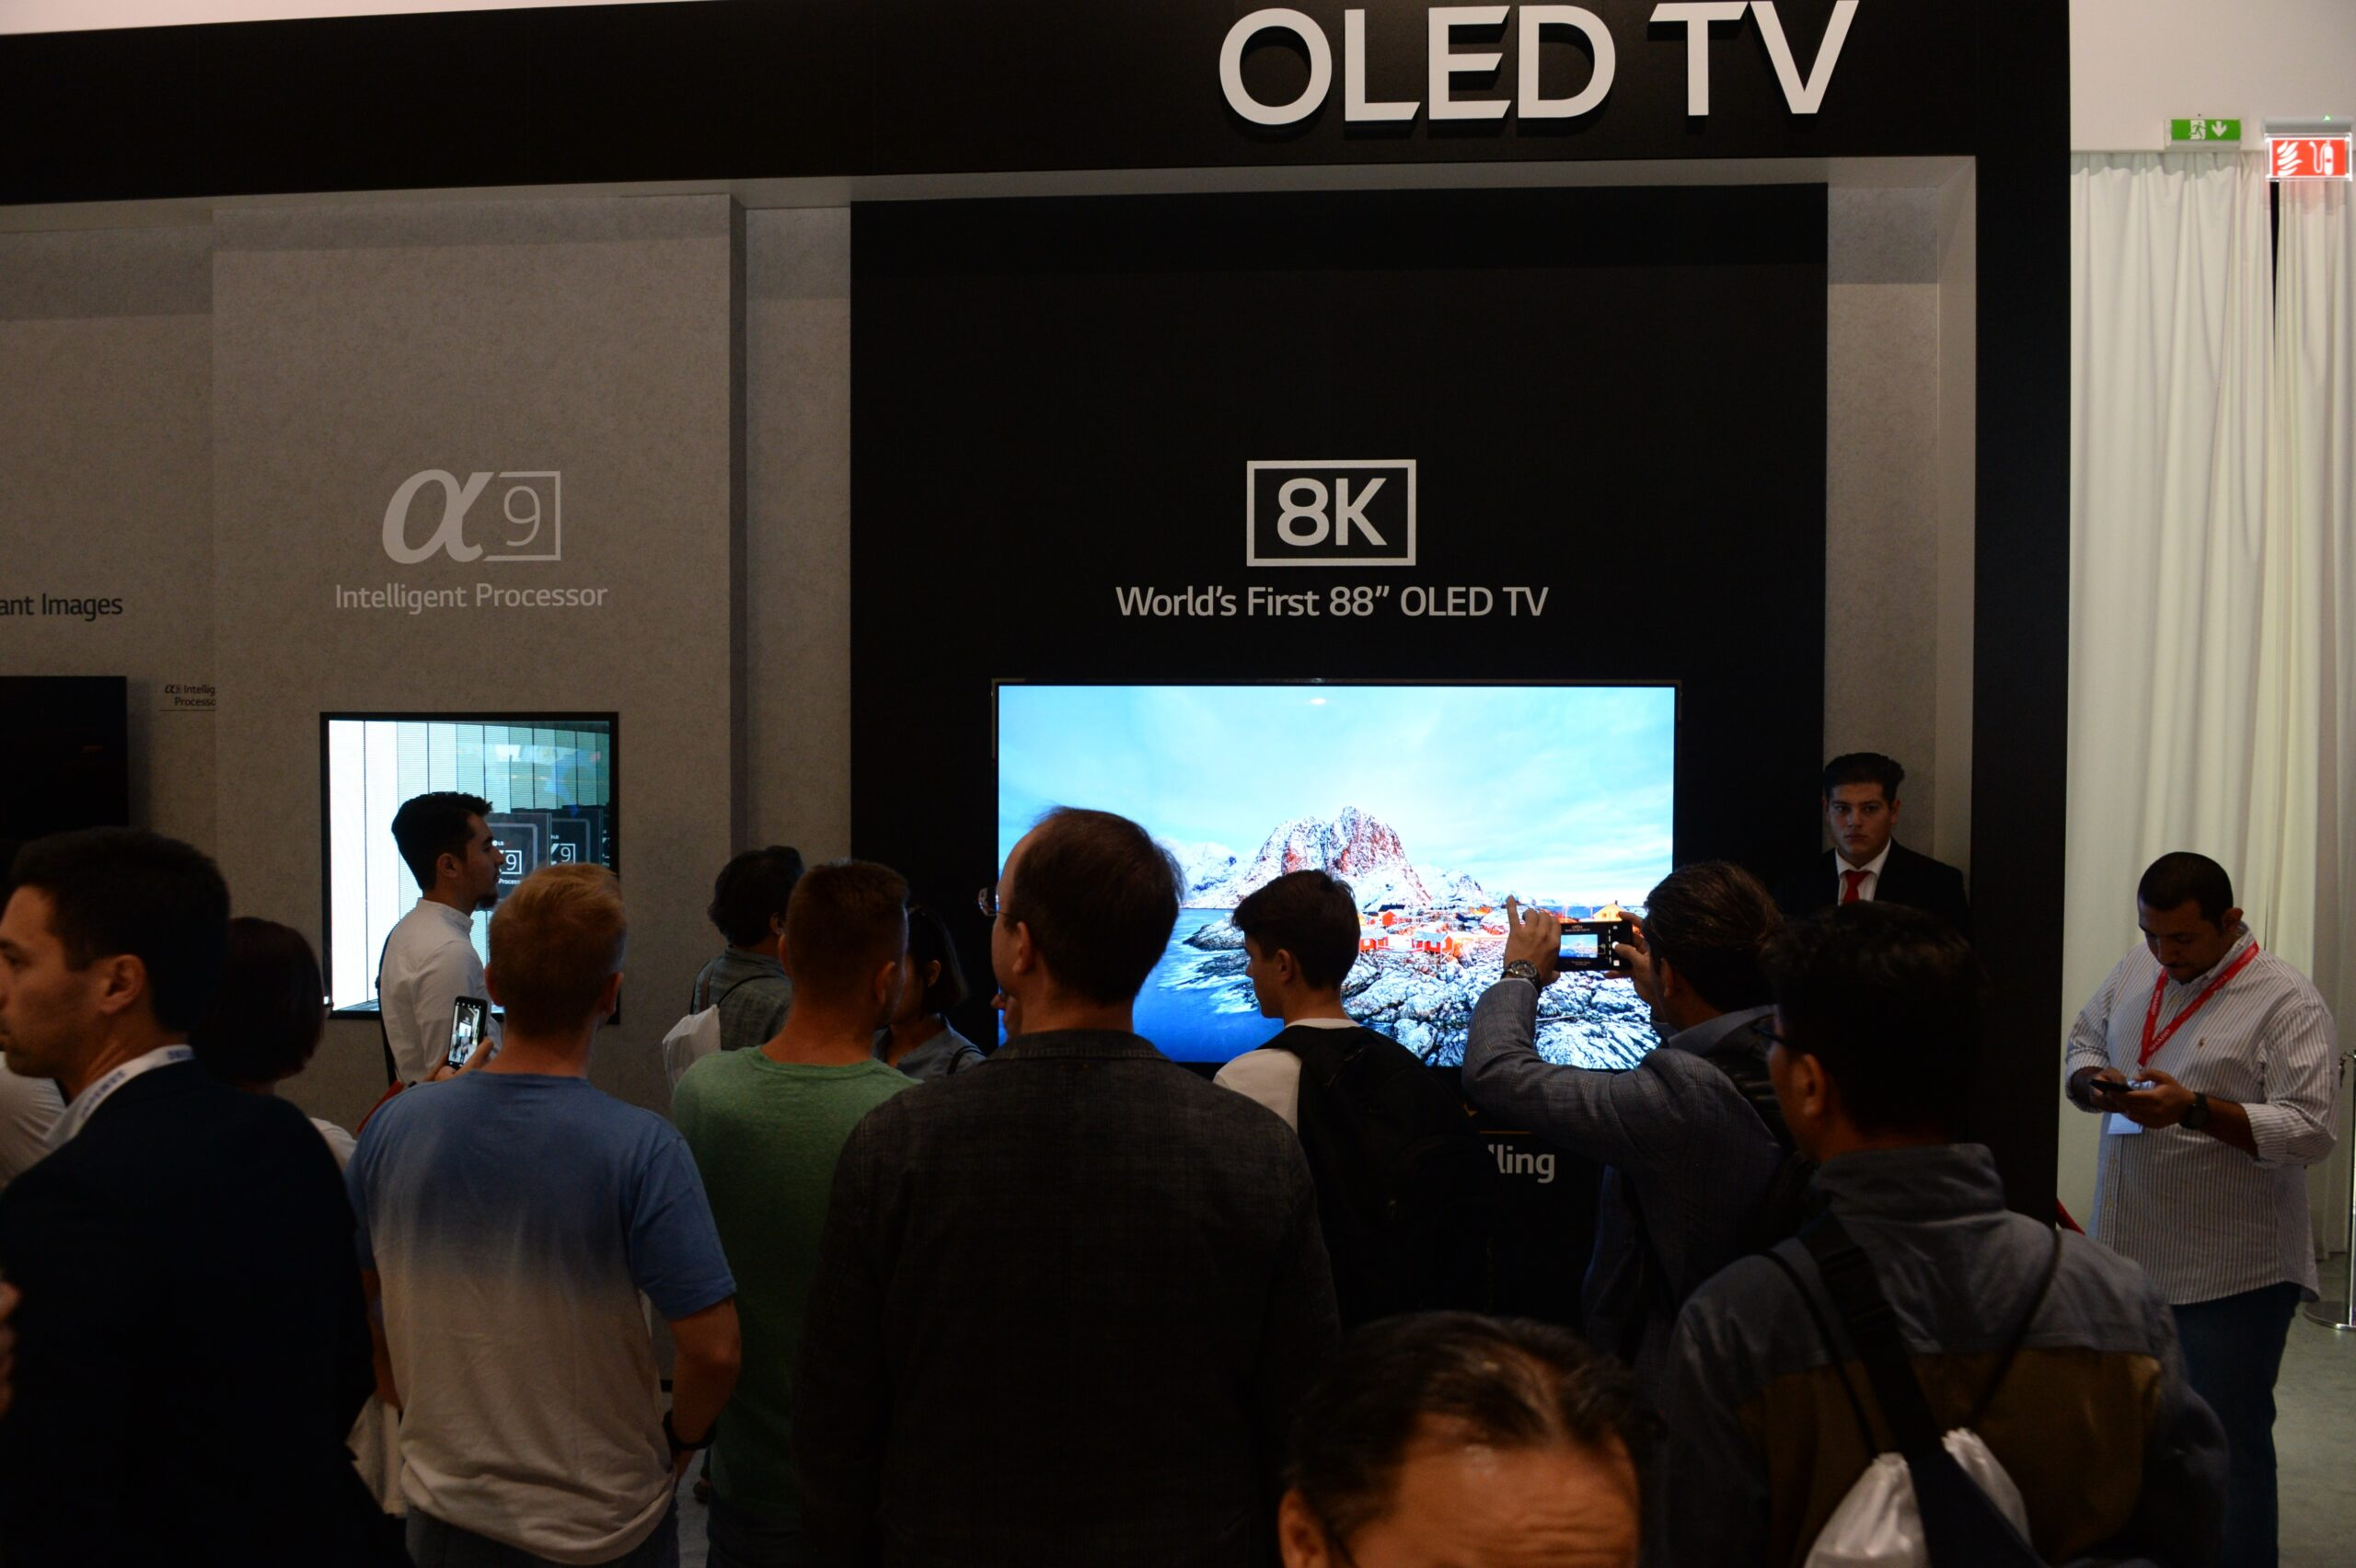 World's First 8K OLED TV with A9 Intelligent Processor display zone at IFA 2018 with conference attendees walking around and looking at the display